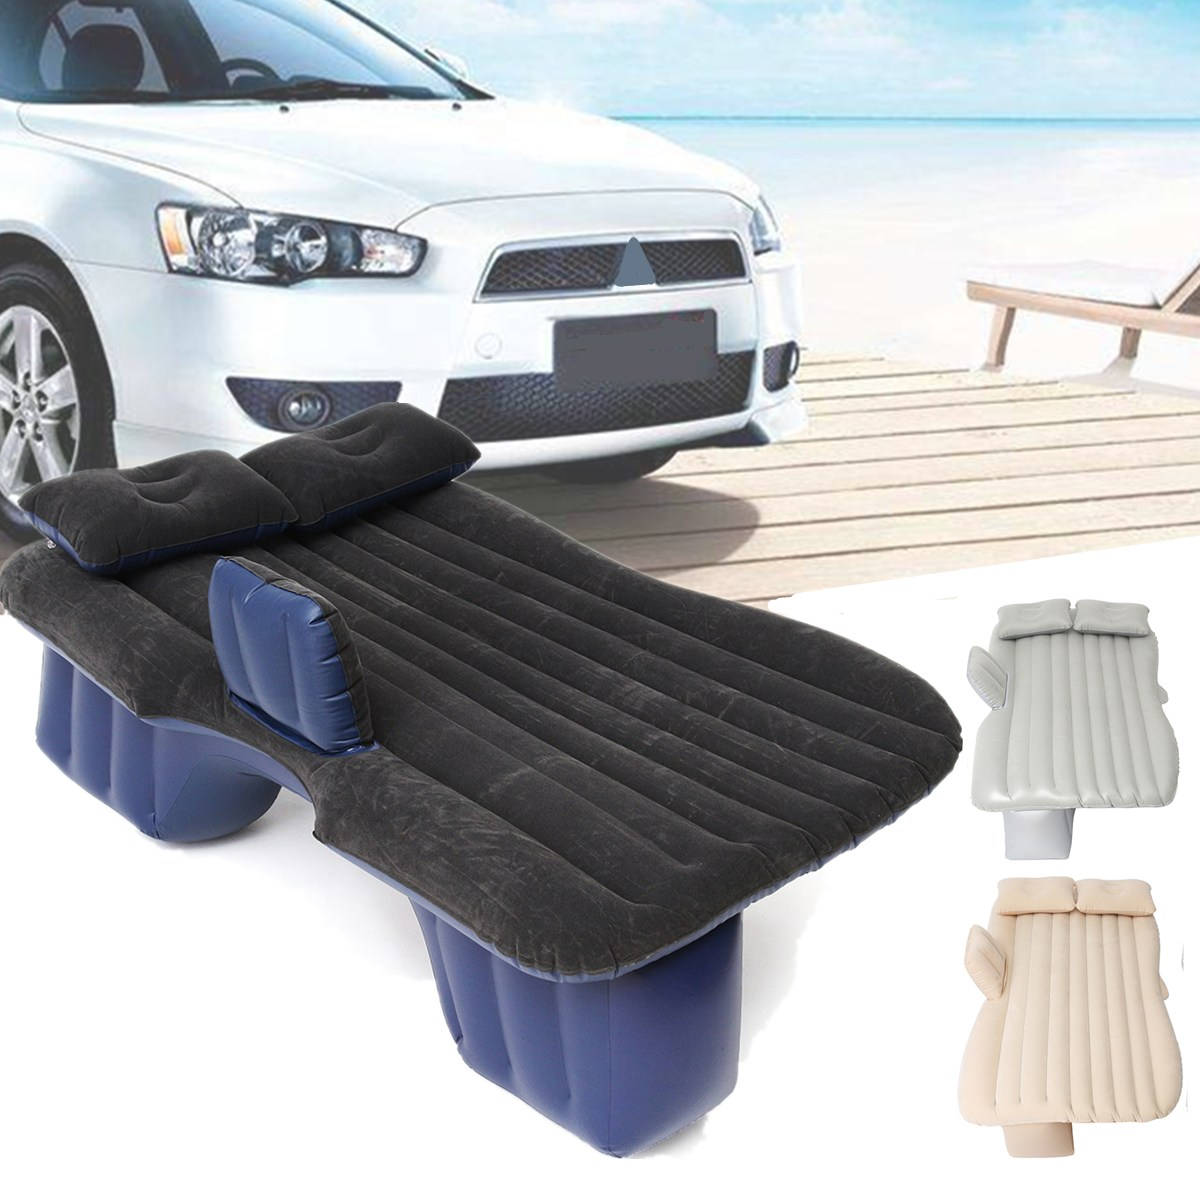 New Flocking Cloth Car Back Seat Cover Car Air Mattress Travel Bed Inflatable Mattress Air Bed Good Quality Inflatable Car Bed hot sales selling car back seat cover car air mattress travel bed inflatable mattress air bed good quality inflatable car bed